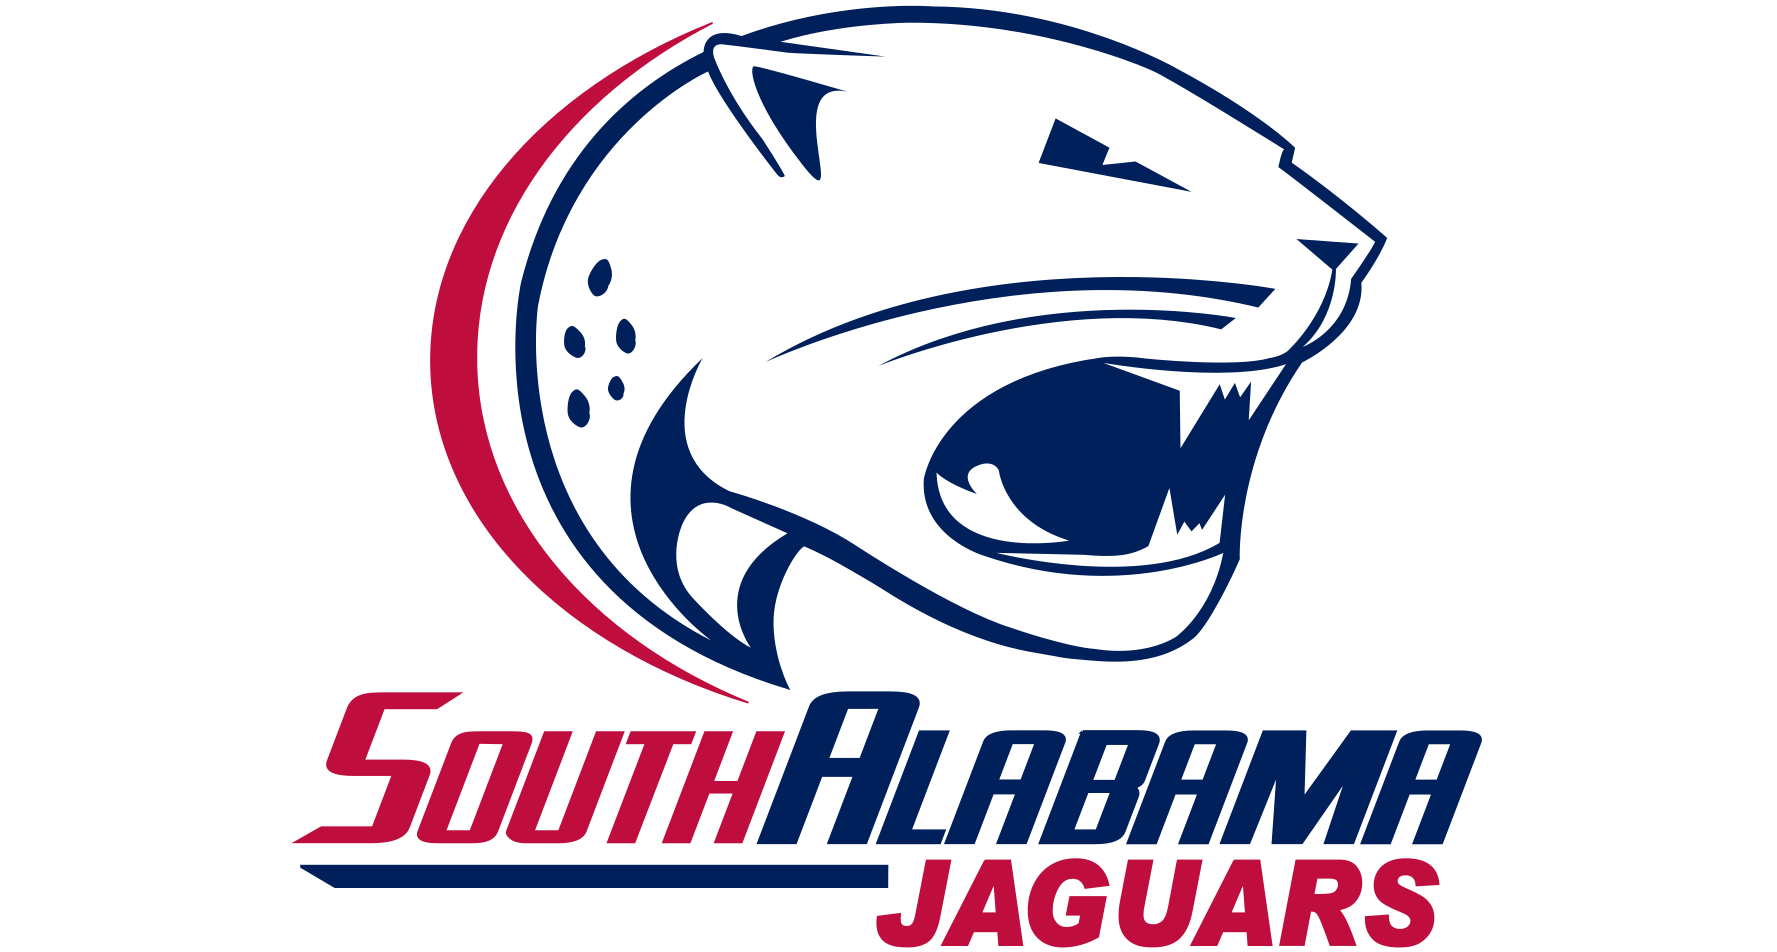 (image: USA){ }Proposal revealed for immediate construction of on-campus South Alabama football stadium